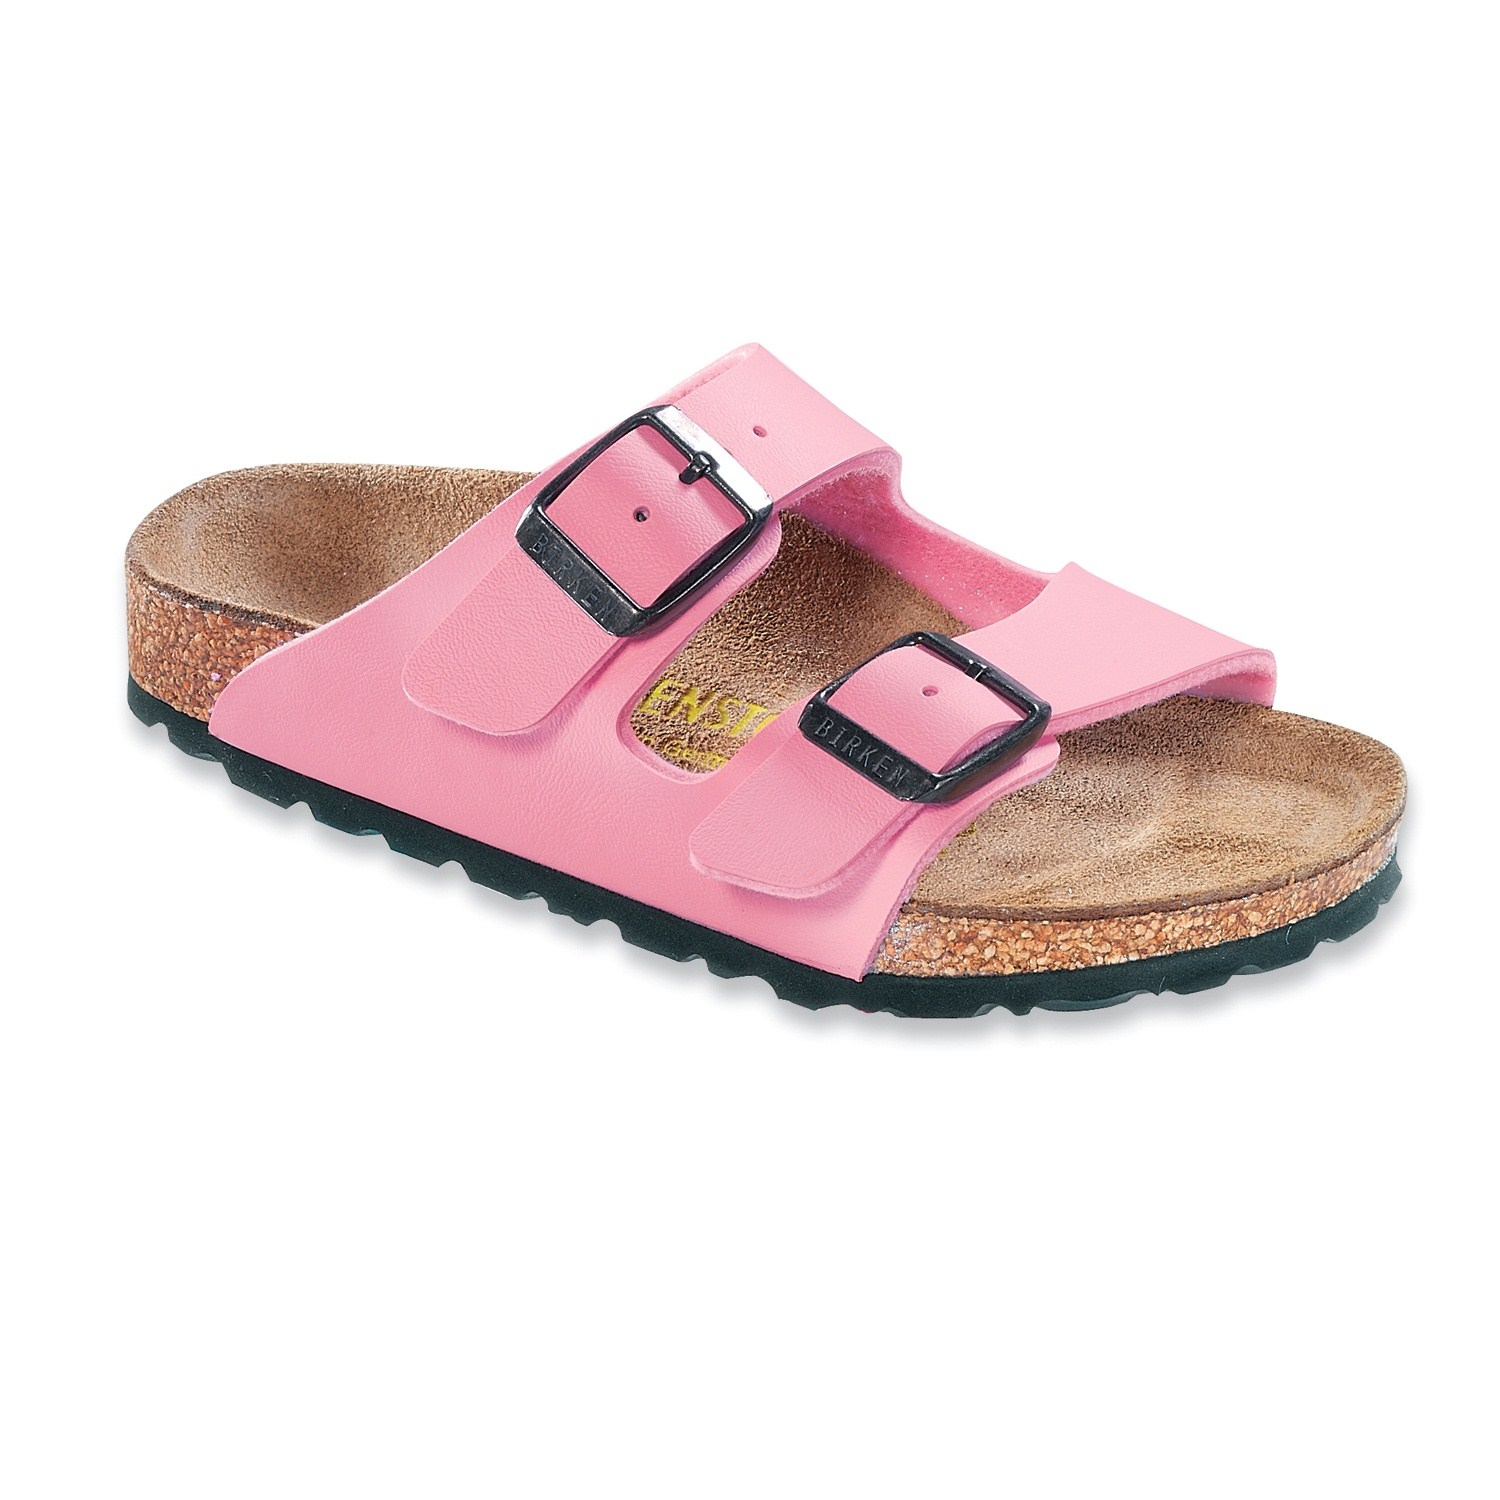 Birkenstock Children S Shoes